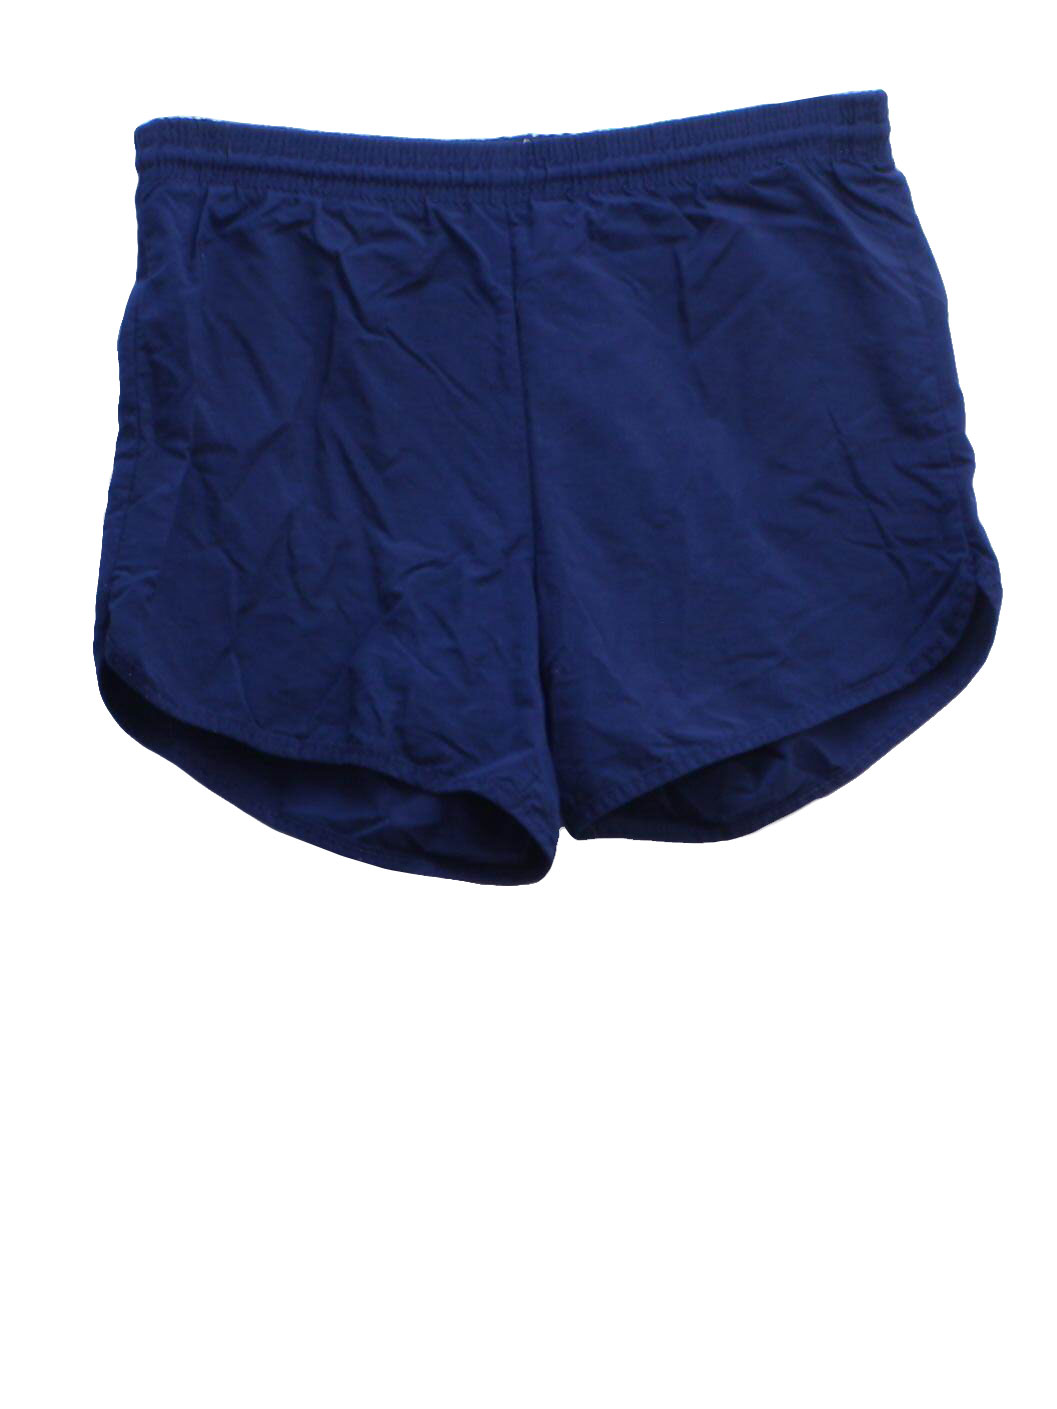 90s Retro Shorts: 90s -Soffe Sport- Mens dark blue background ...